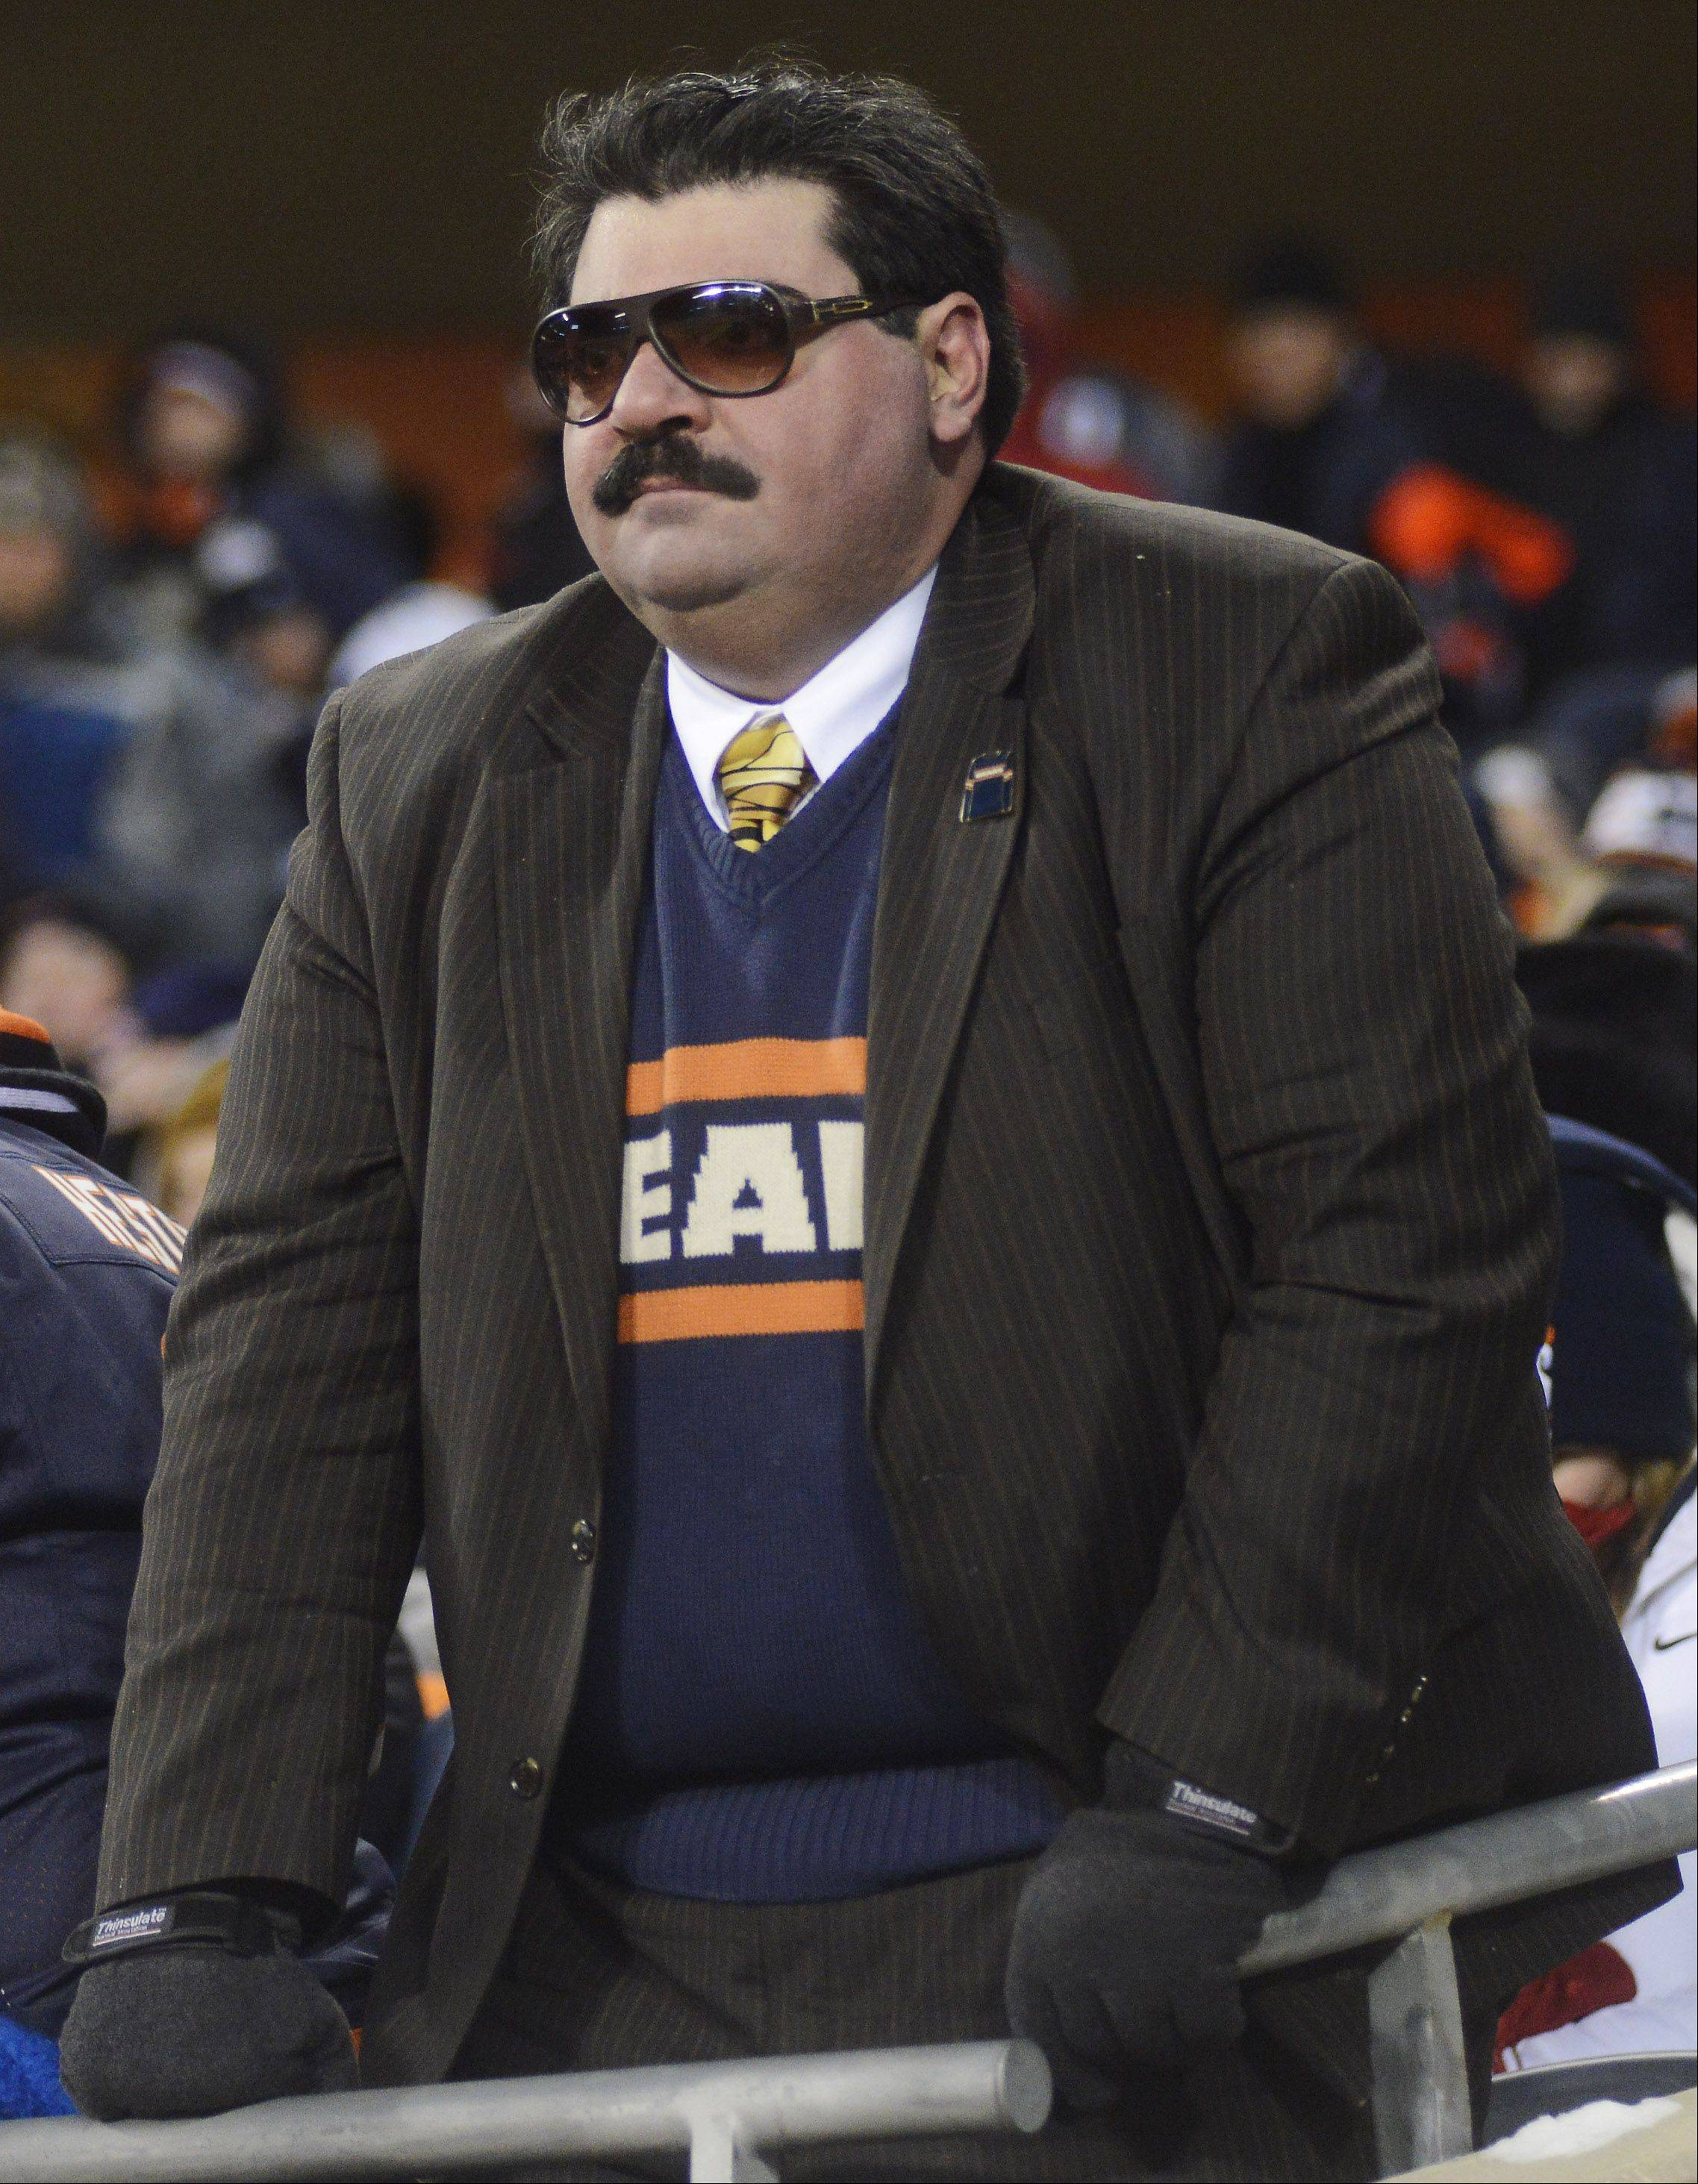 A Mike Ditka fan watches the Bears during Monday's game at Soldier Field.